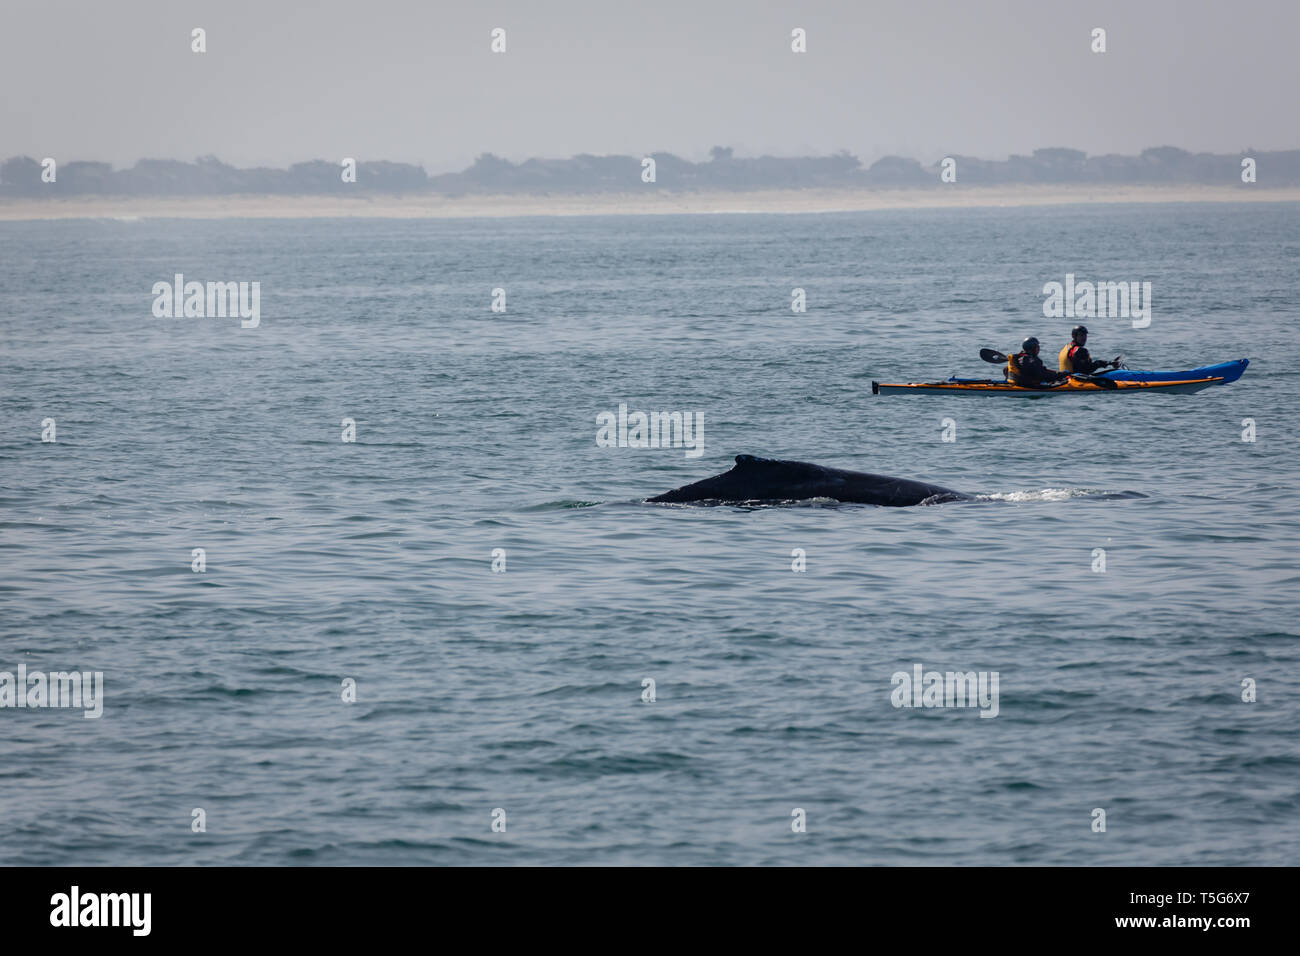 Closeup of small kayaks at dangerously close to a whale in the ocean - Stock Image